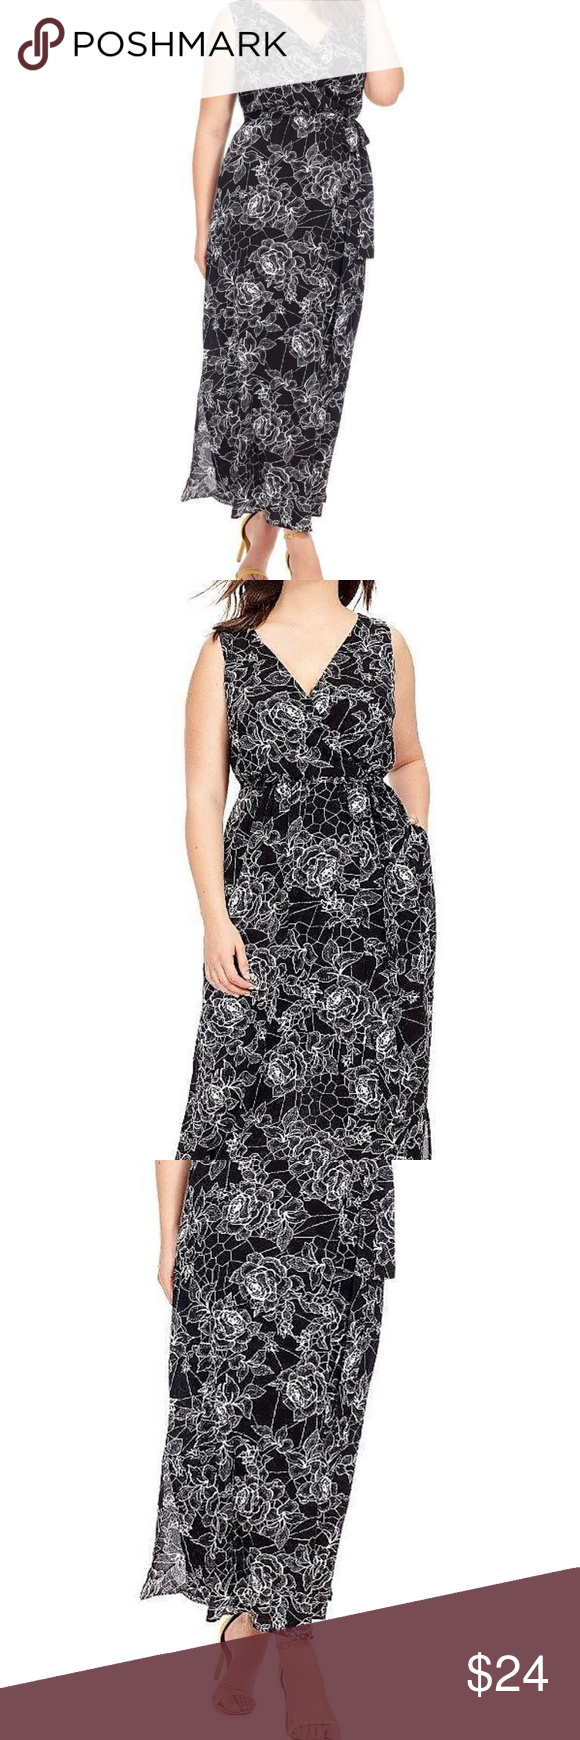 aa634aeaa030c CITY CHIC black white floral ROSE CAGE MAXI DRESS NWOT CITY CHIC SOLD ON  GWYNNIE BEE